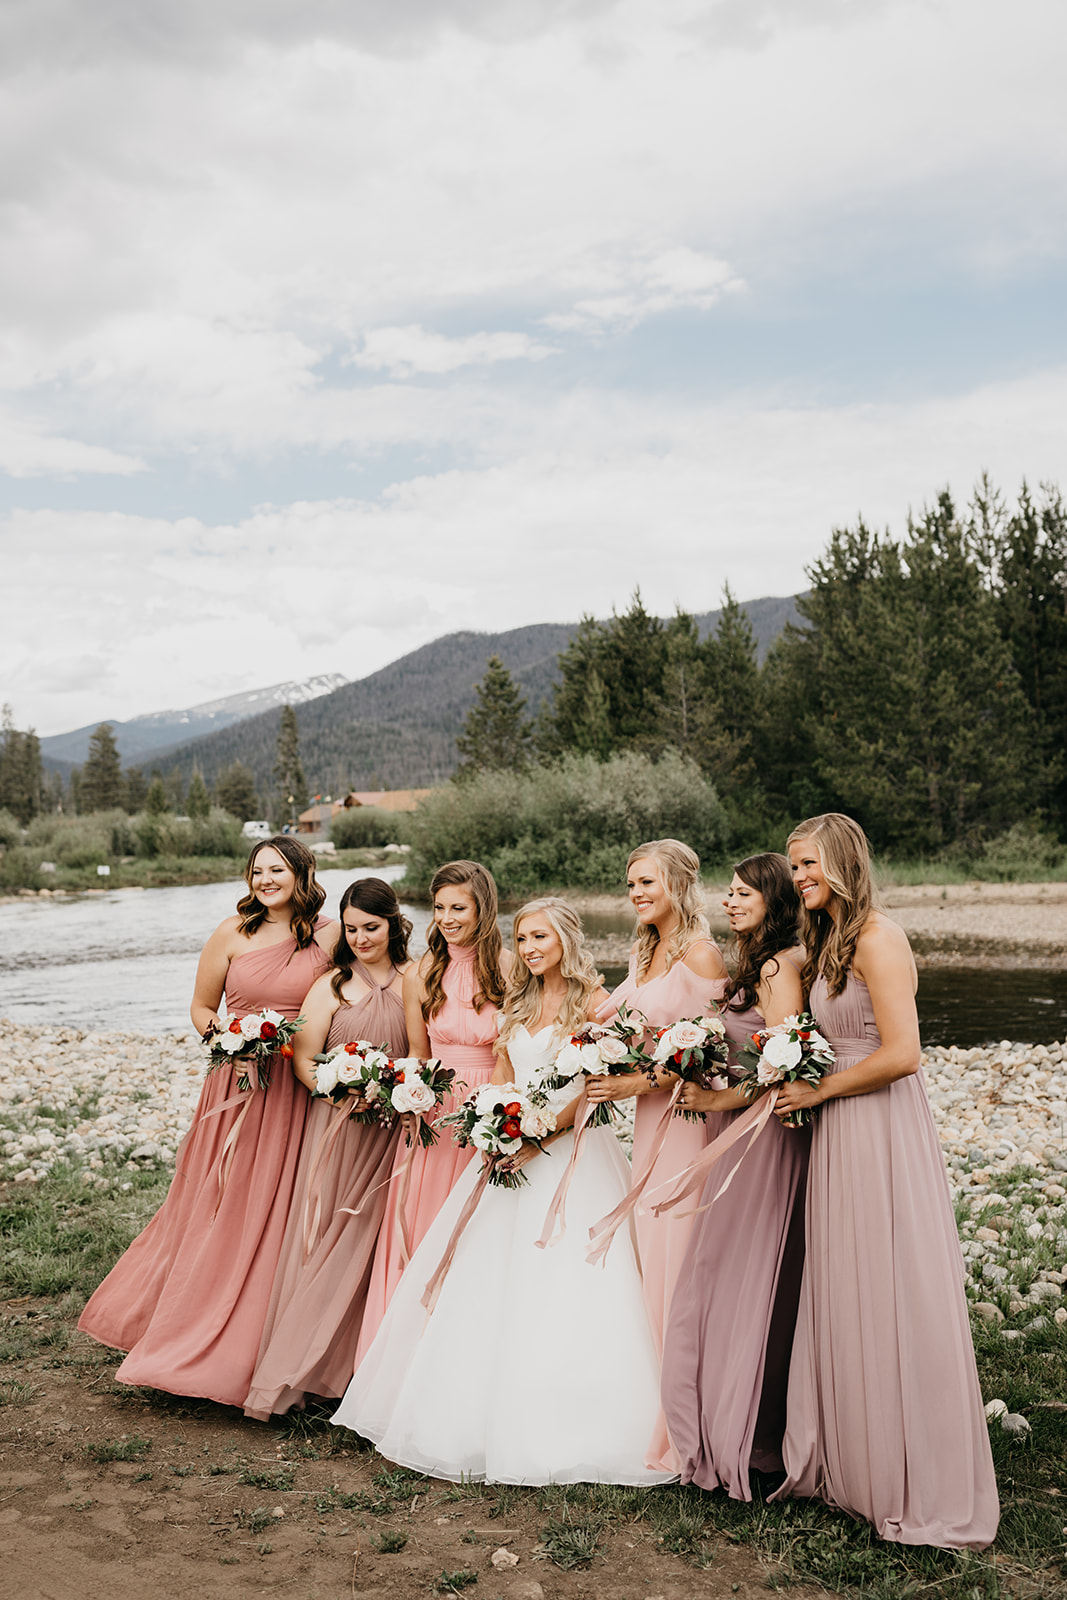 Bridesmaids smiling before a Rocky Mountain wedding